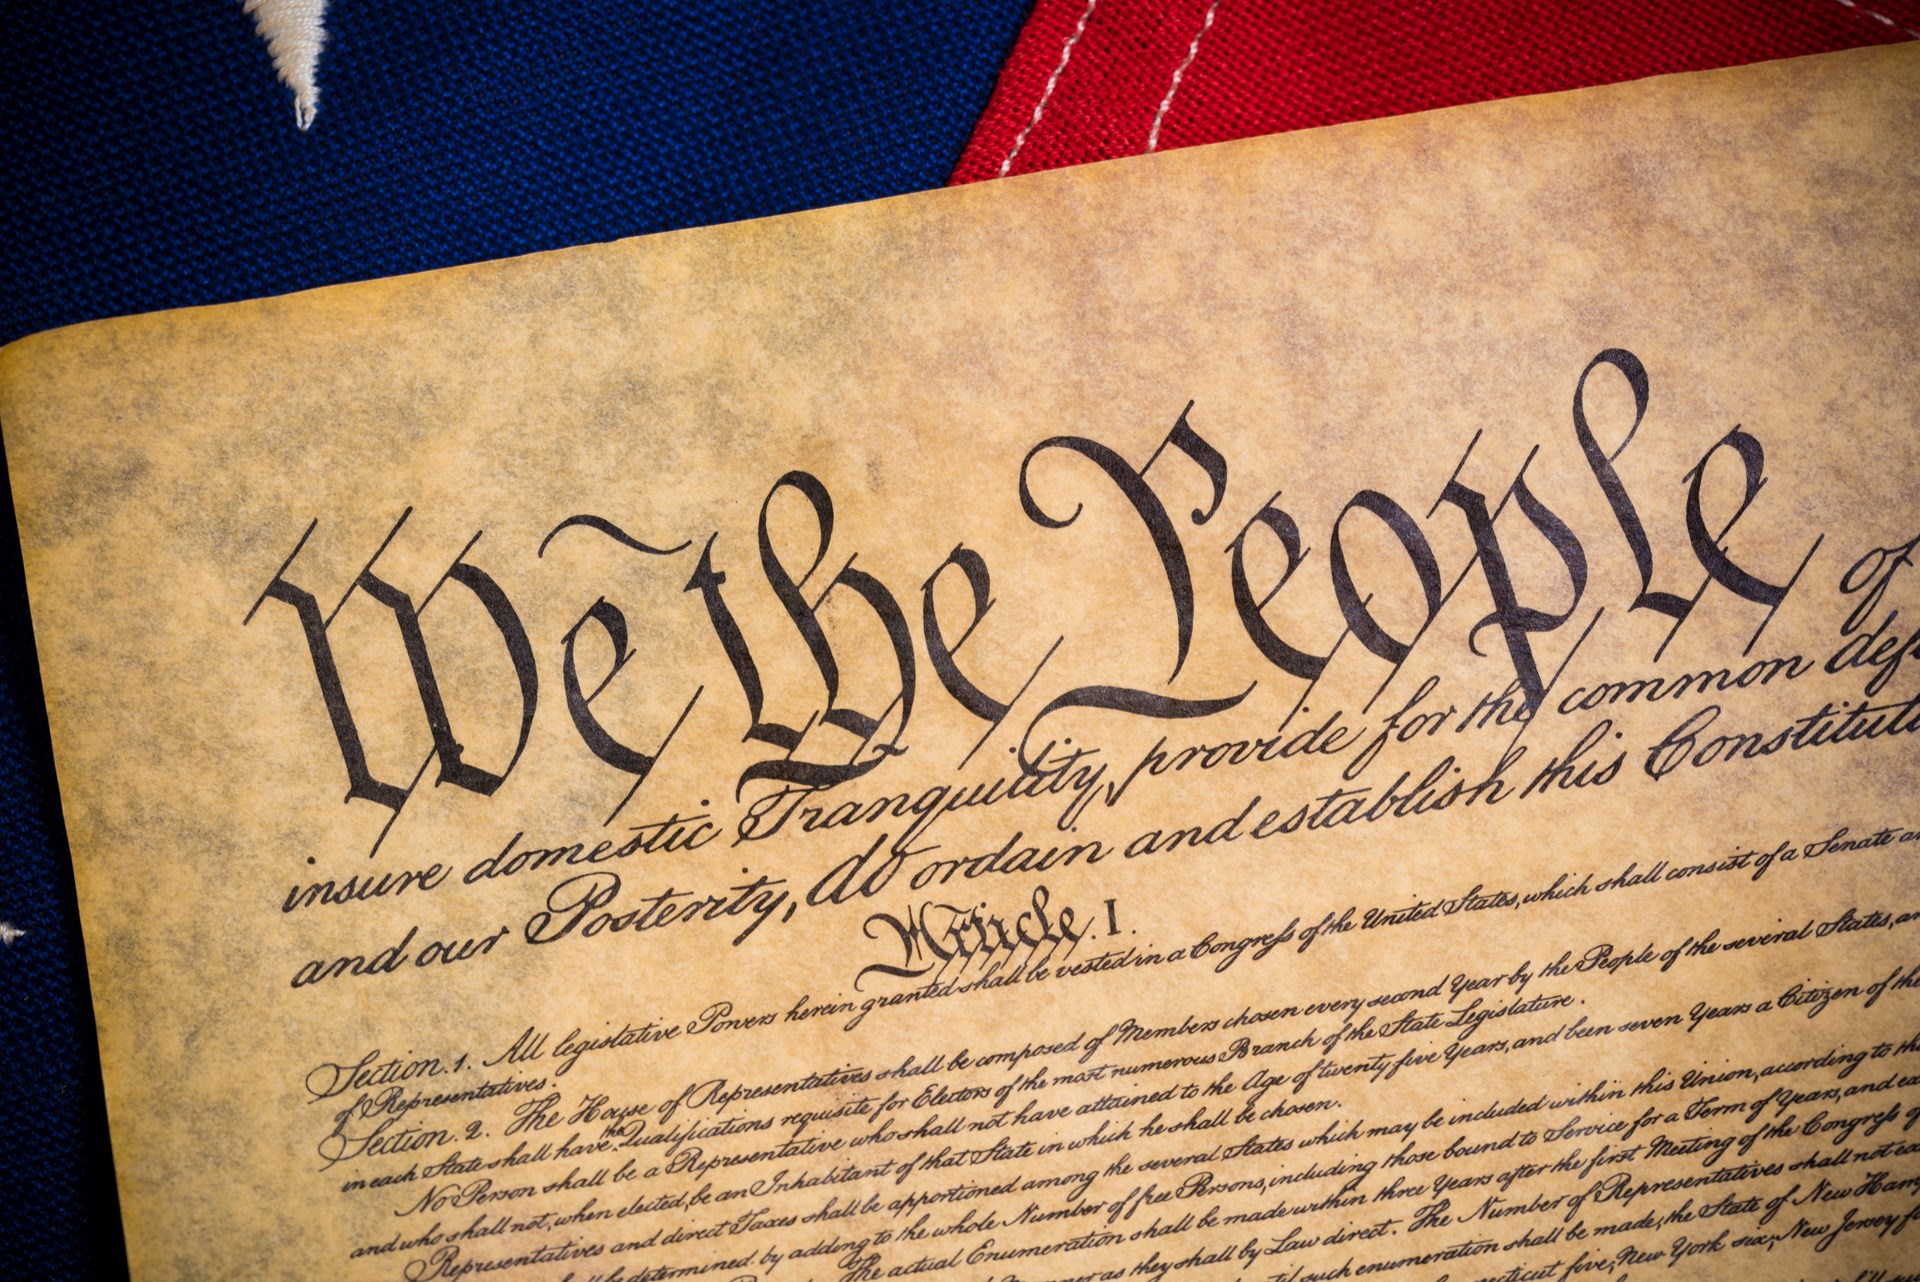 constitutional ignorance led to a tyranny of the majority